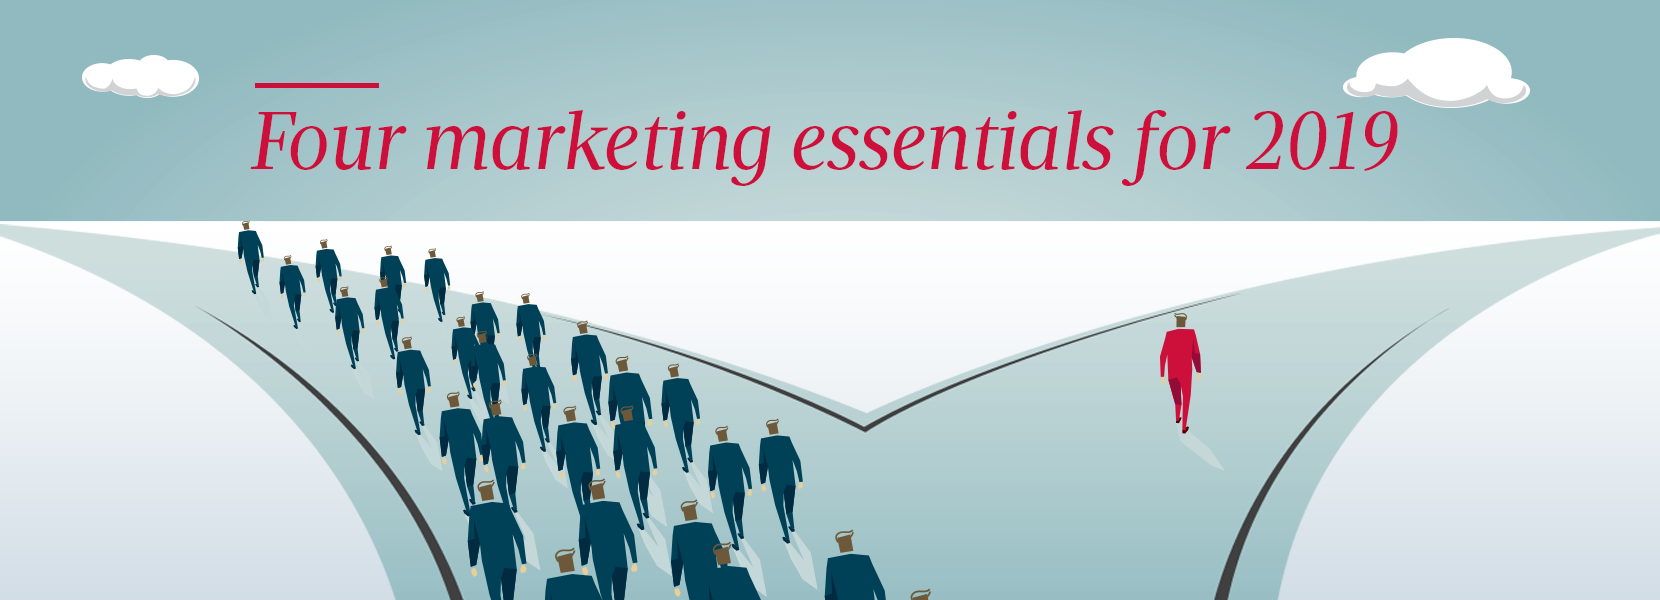 4 marketing essentials.png